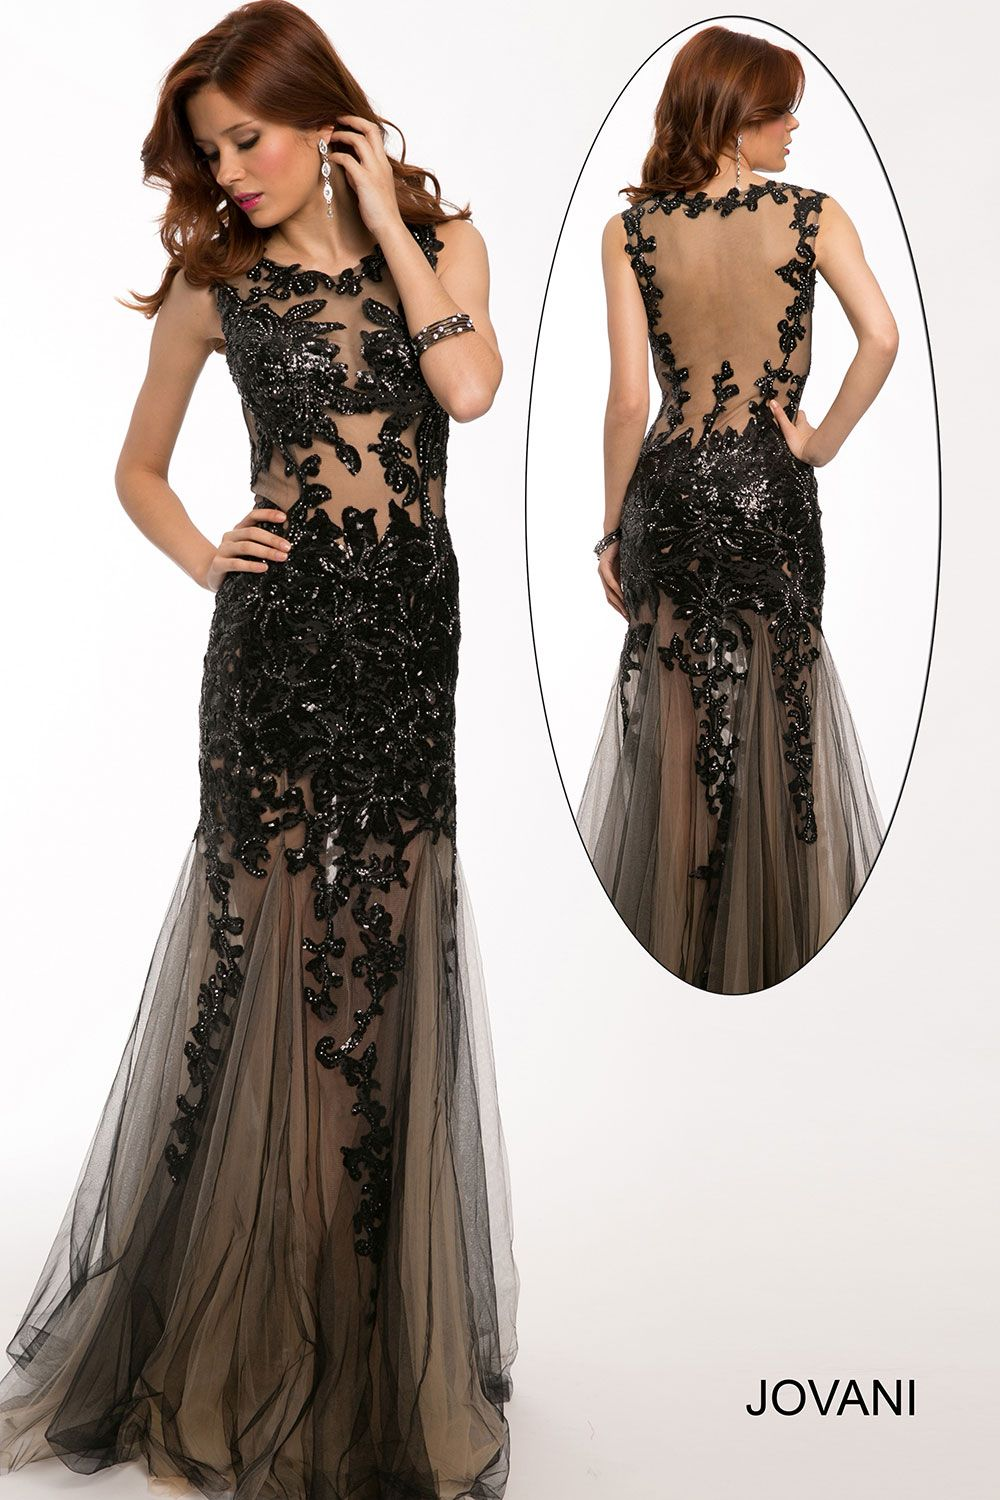 Black and Nude Prom Dress by Jovani- This sleeveless fit and flare ...